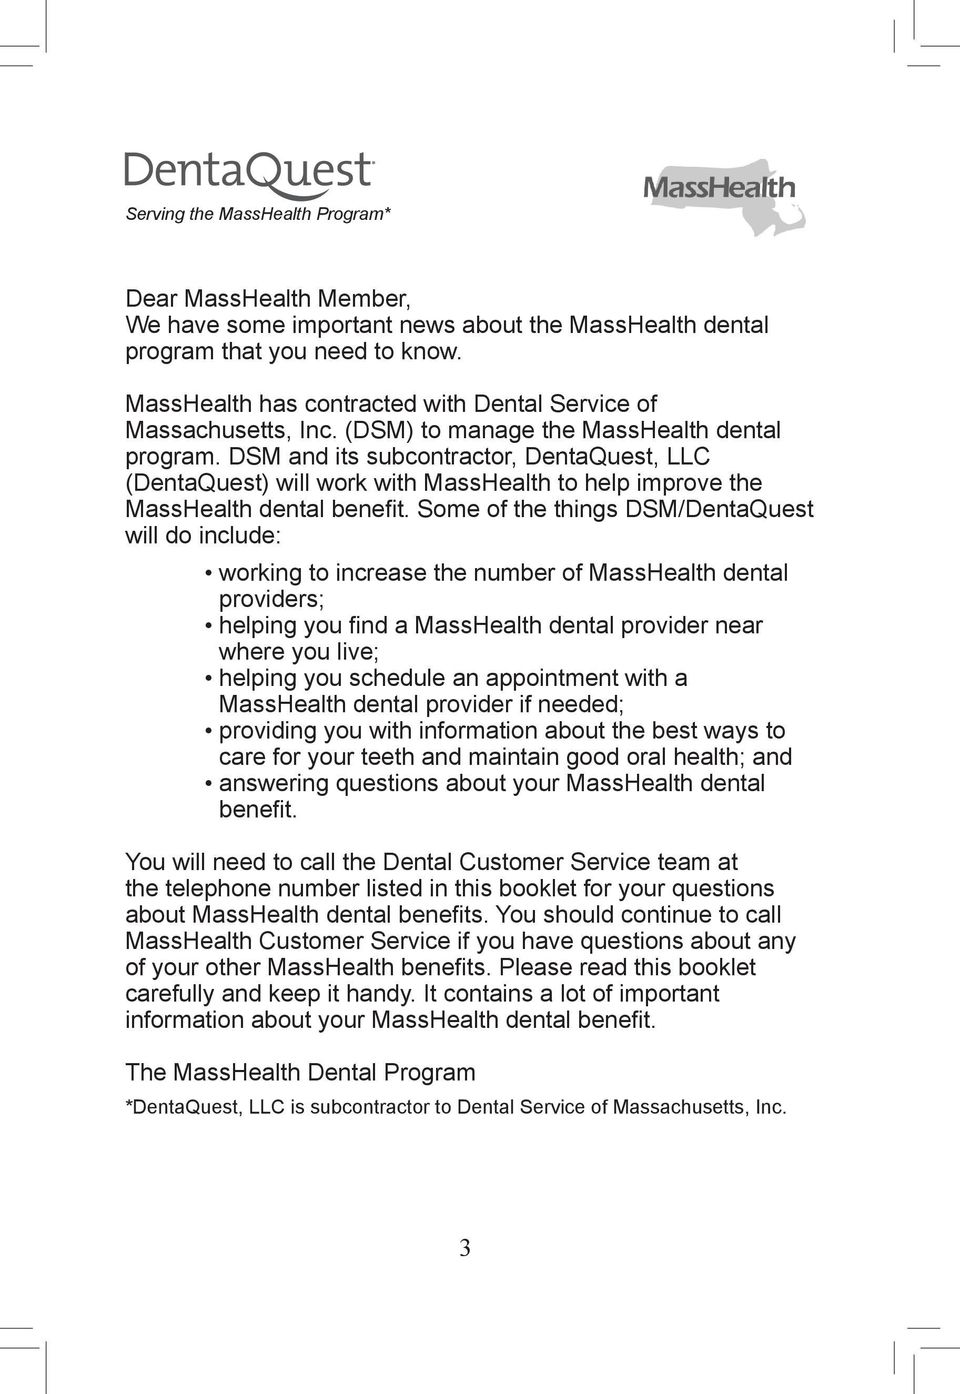 DSM and its subcontractor, DentaQuest, LLC (DentaQuest) will work with MassHealth to help improve the MassHealth dental benefit.